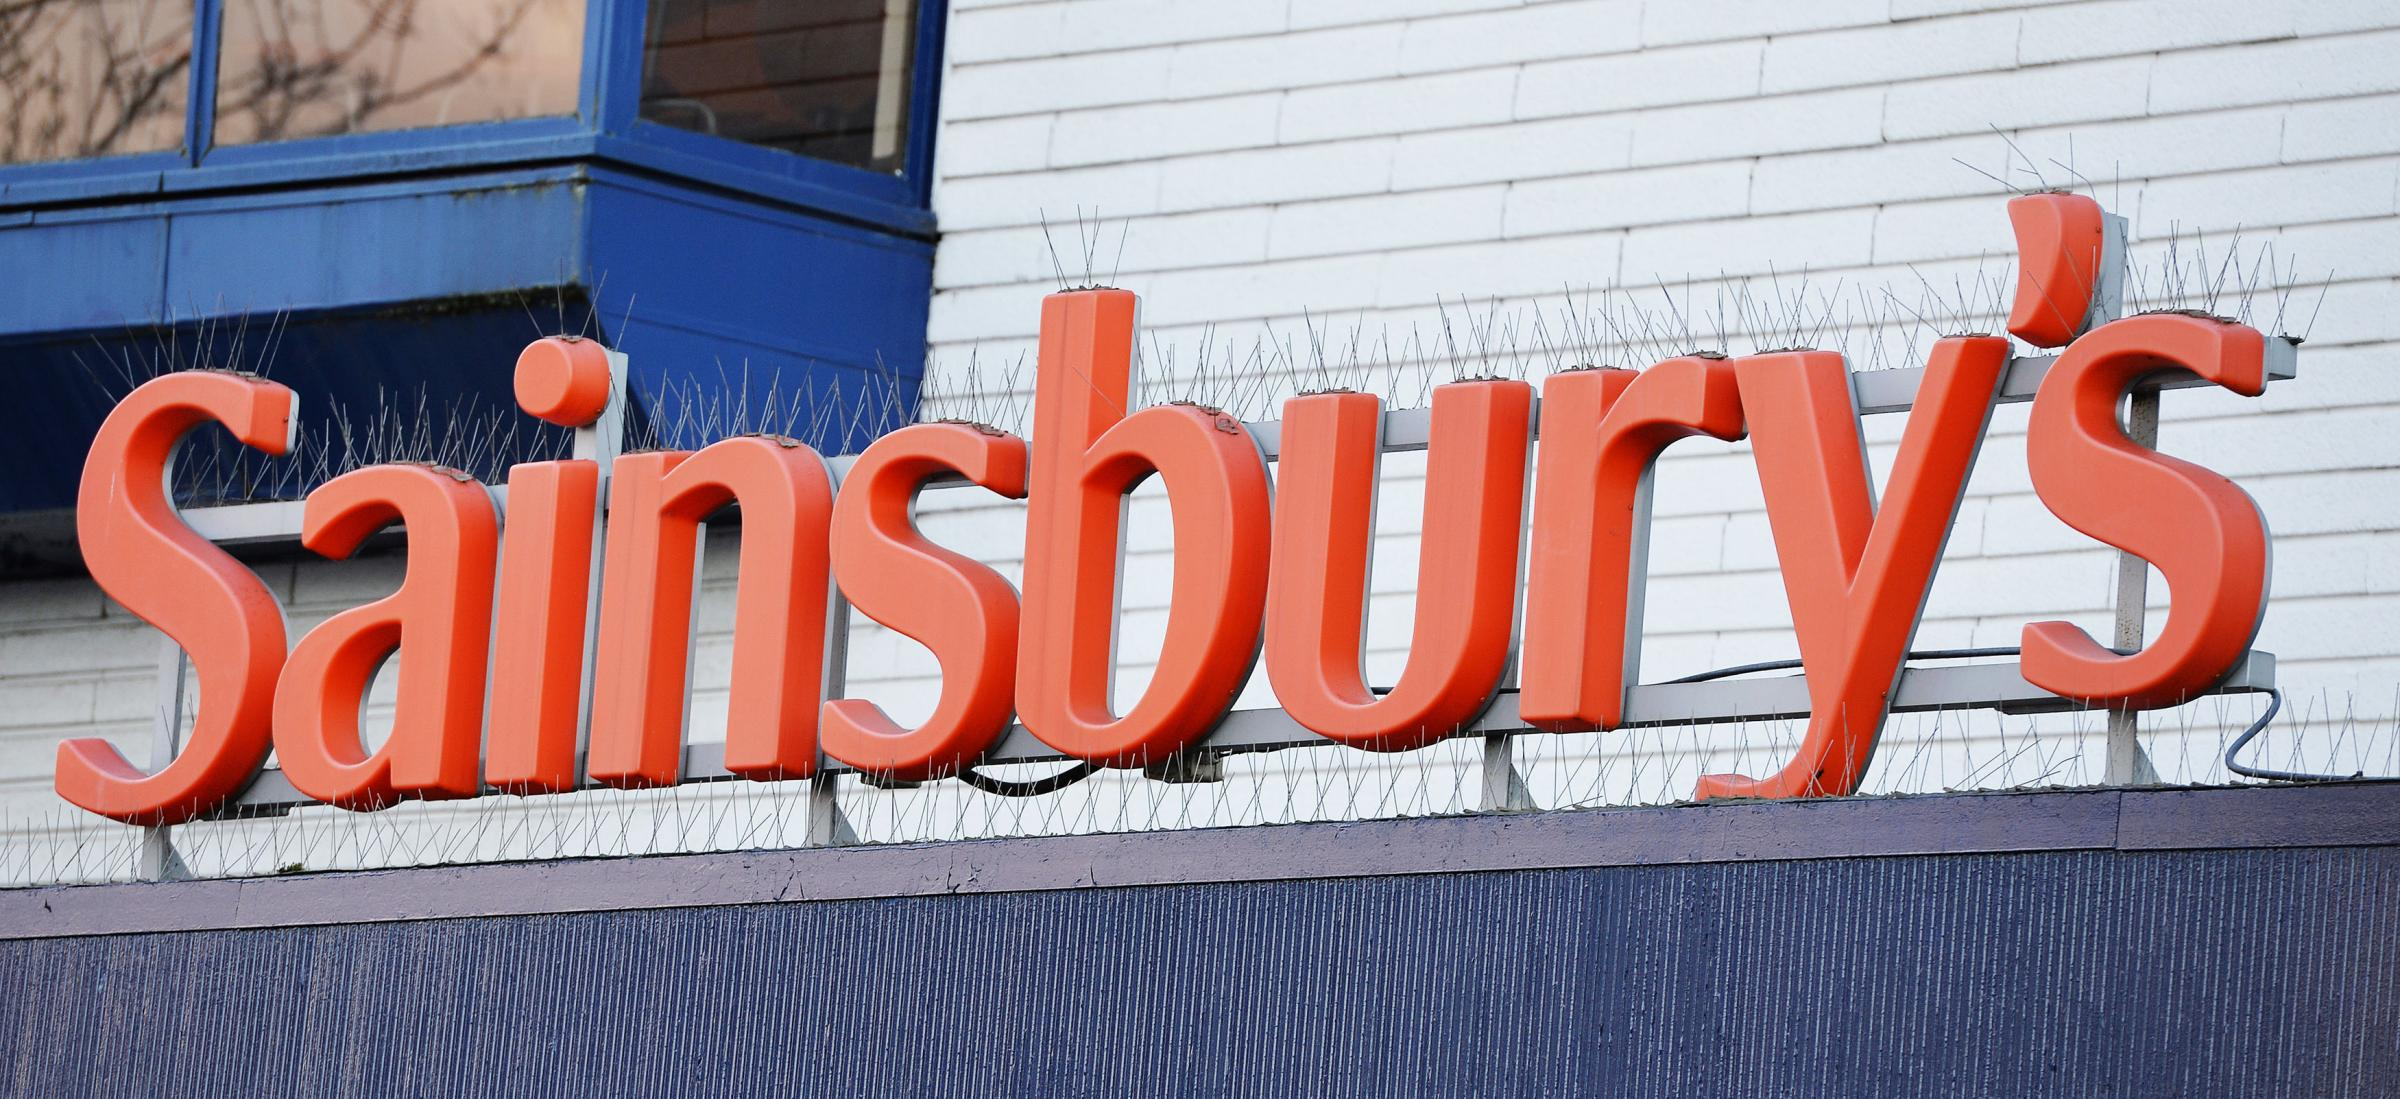 File photo dated 12/01/16 of a Sainsbury's store sign, as the supermarket has announced that a management shake up is putting thousands of jobs at risk. PRESS ASSOCIATION Photo. Issue date: Tuesday January 23, 2018. See PA story CITY Sainsburys. Photo